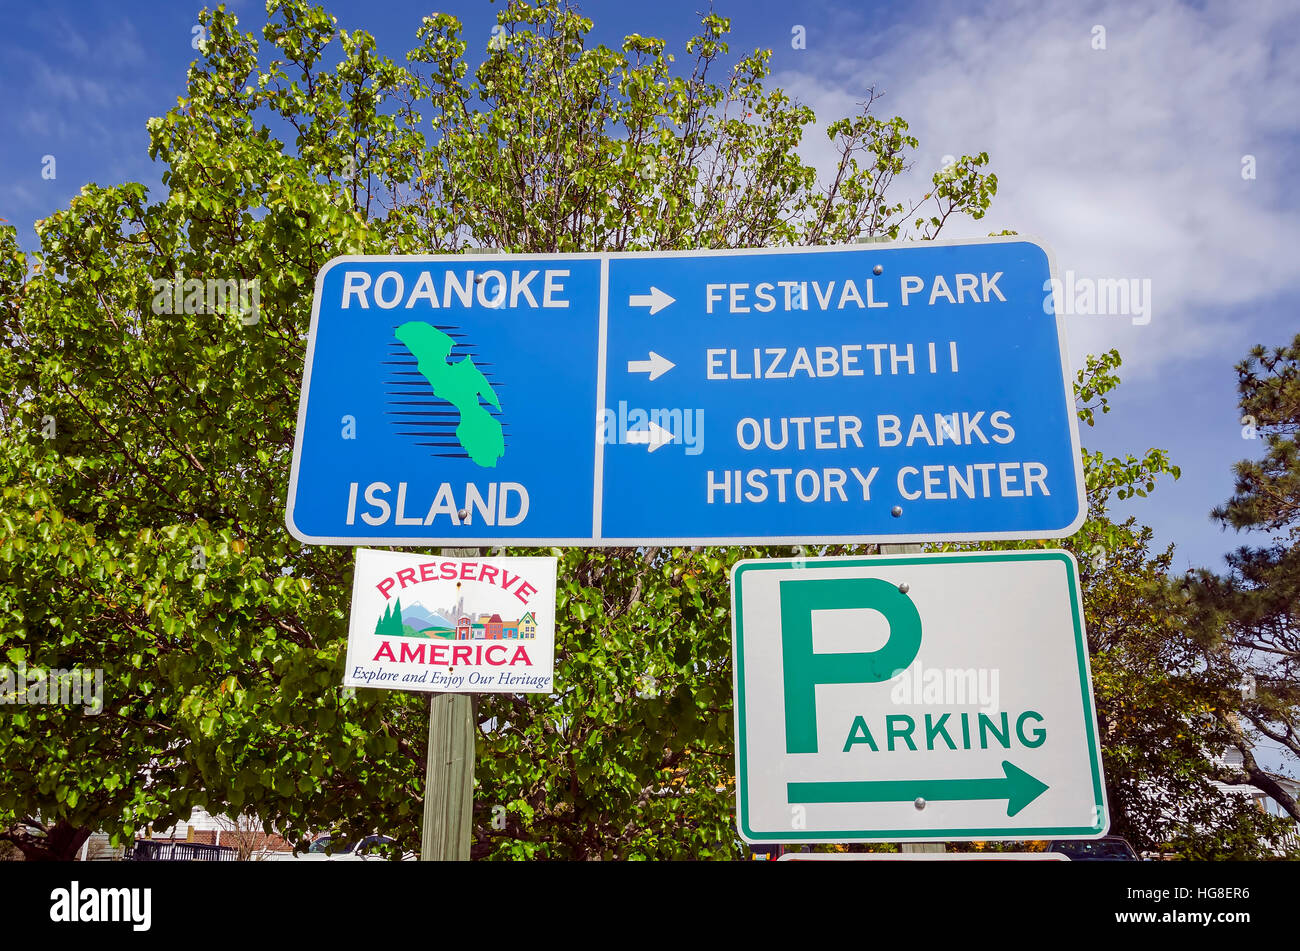 Roanoke Island Traffic Sign Pointing to Historic Attractions, North Carolina Stock Photo